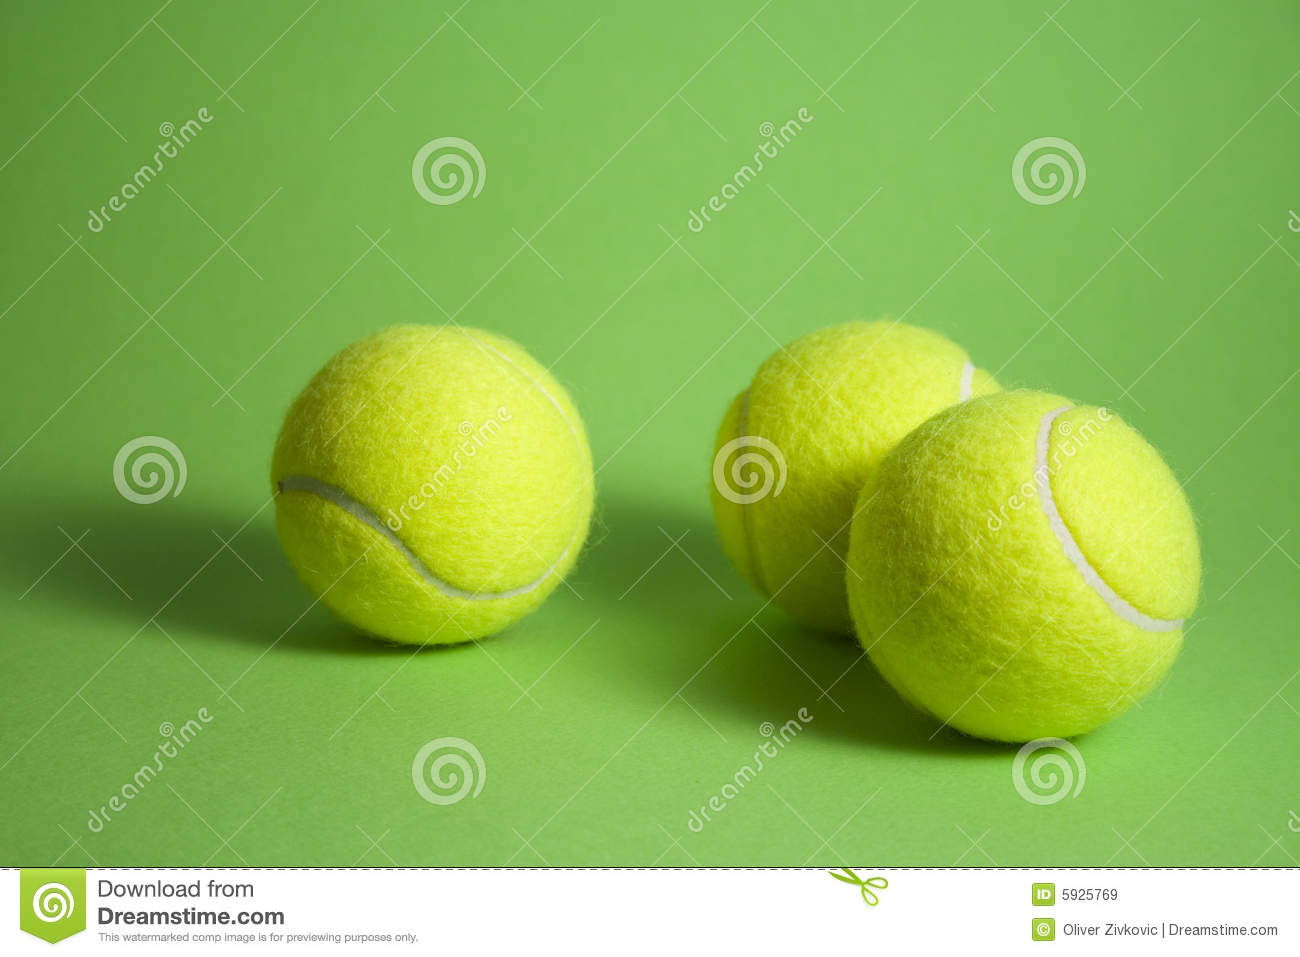 3 tennis balls ond green background